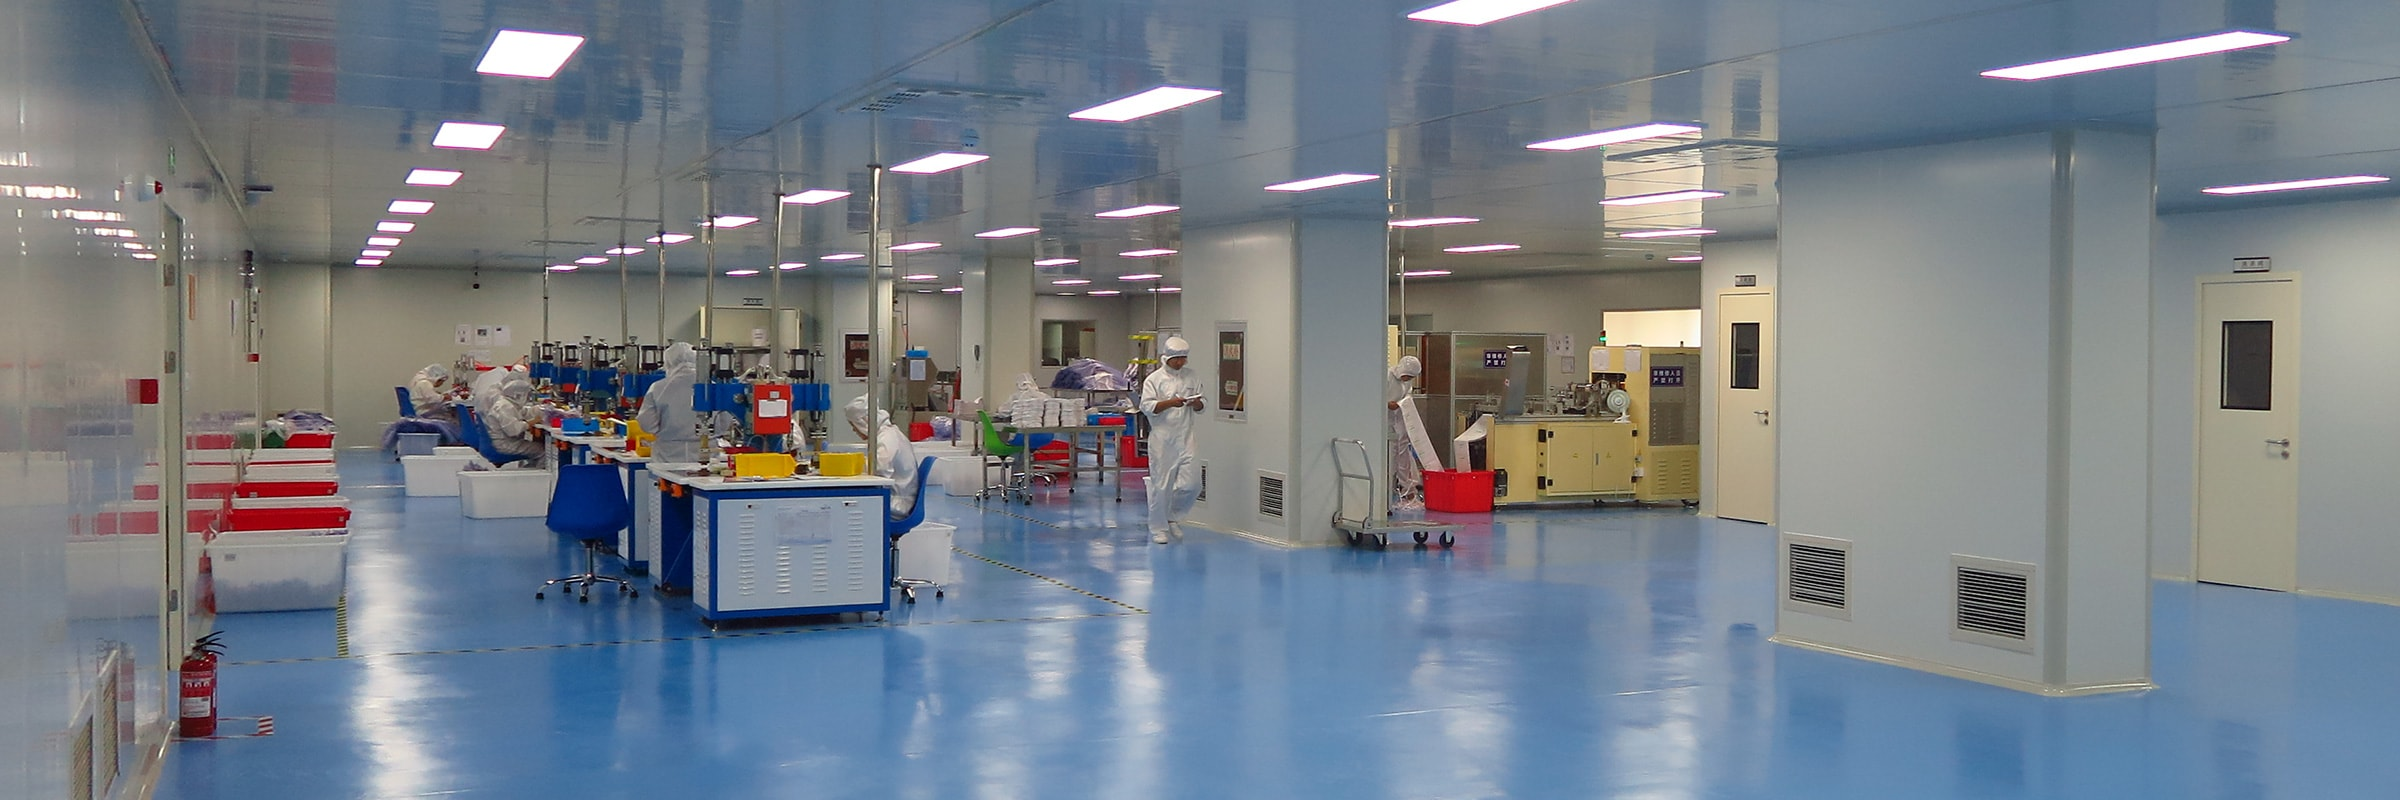 VitalCare | Leading experience in healthcare manufacturing